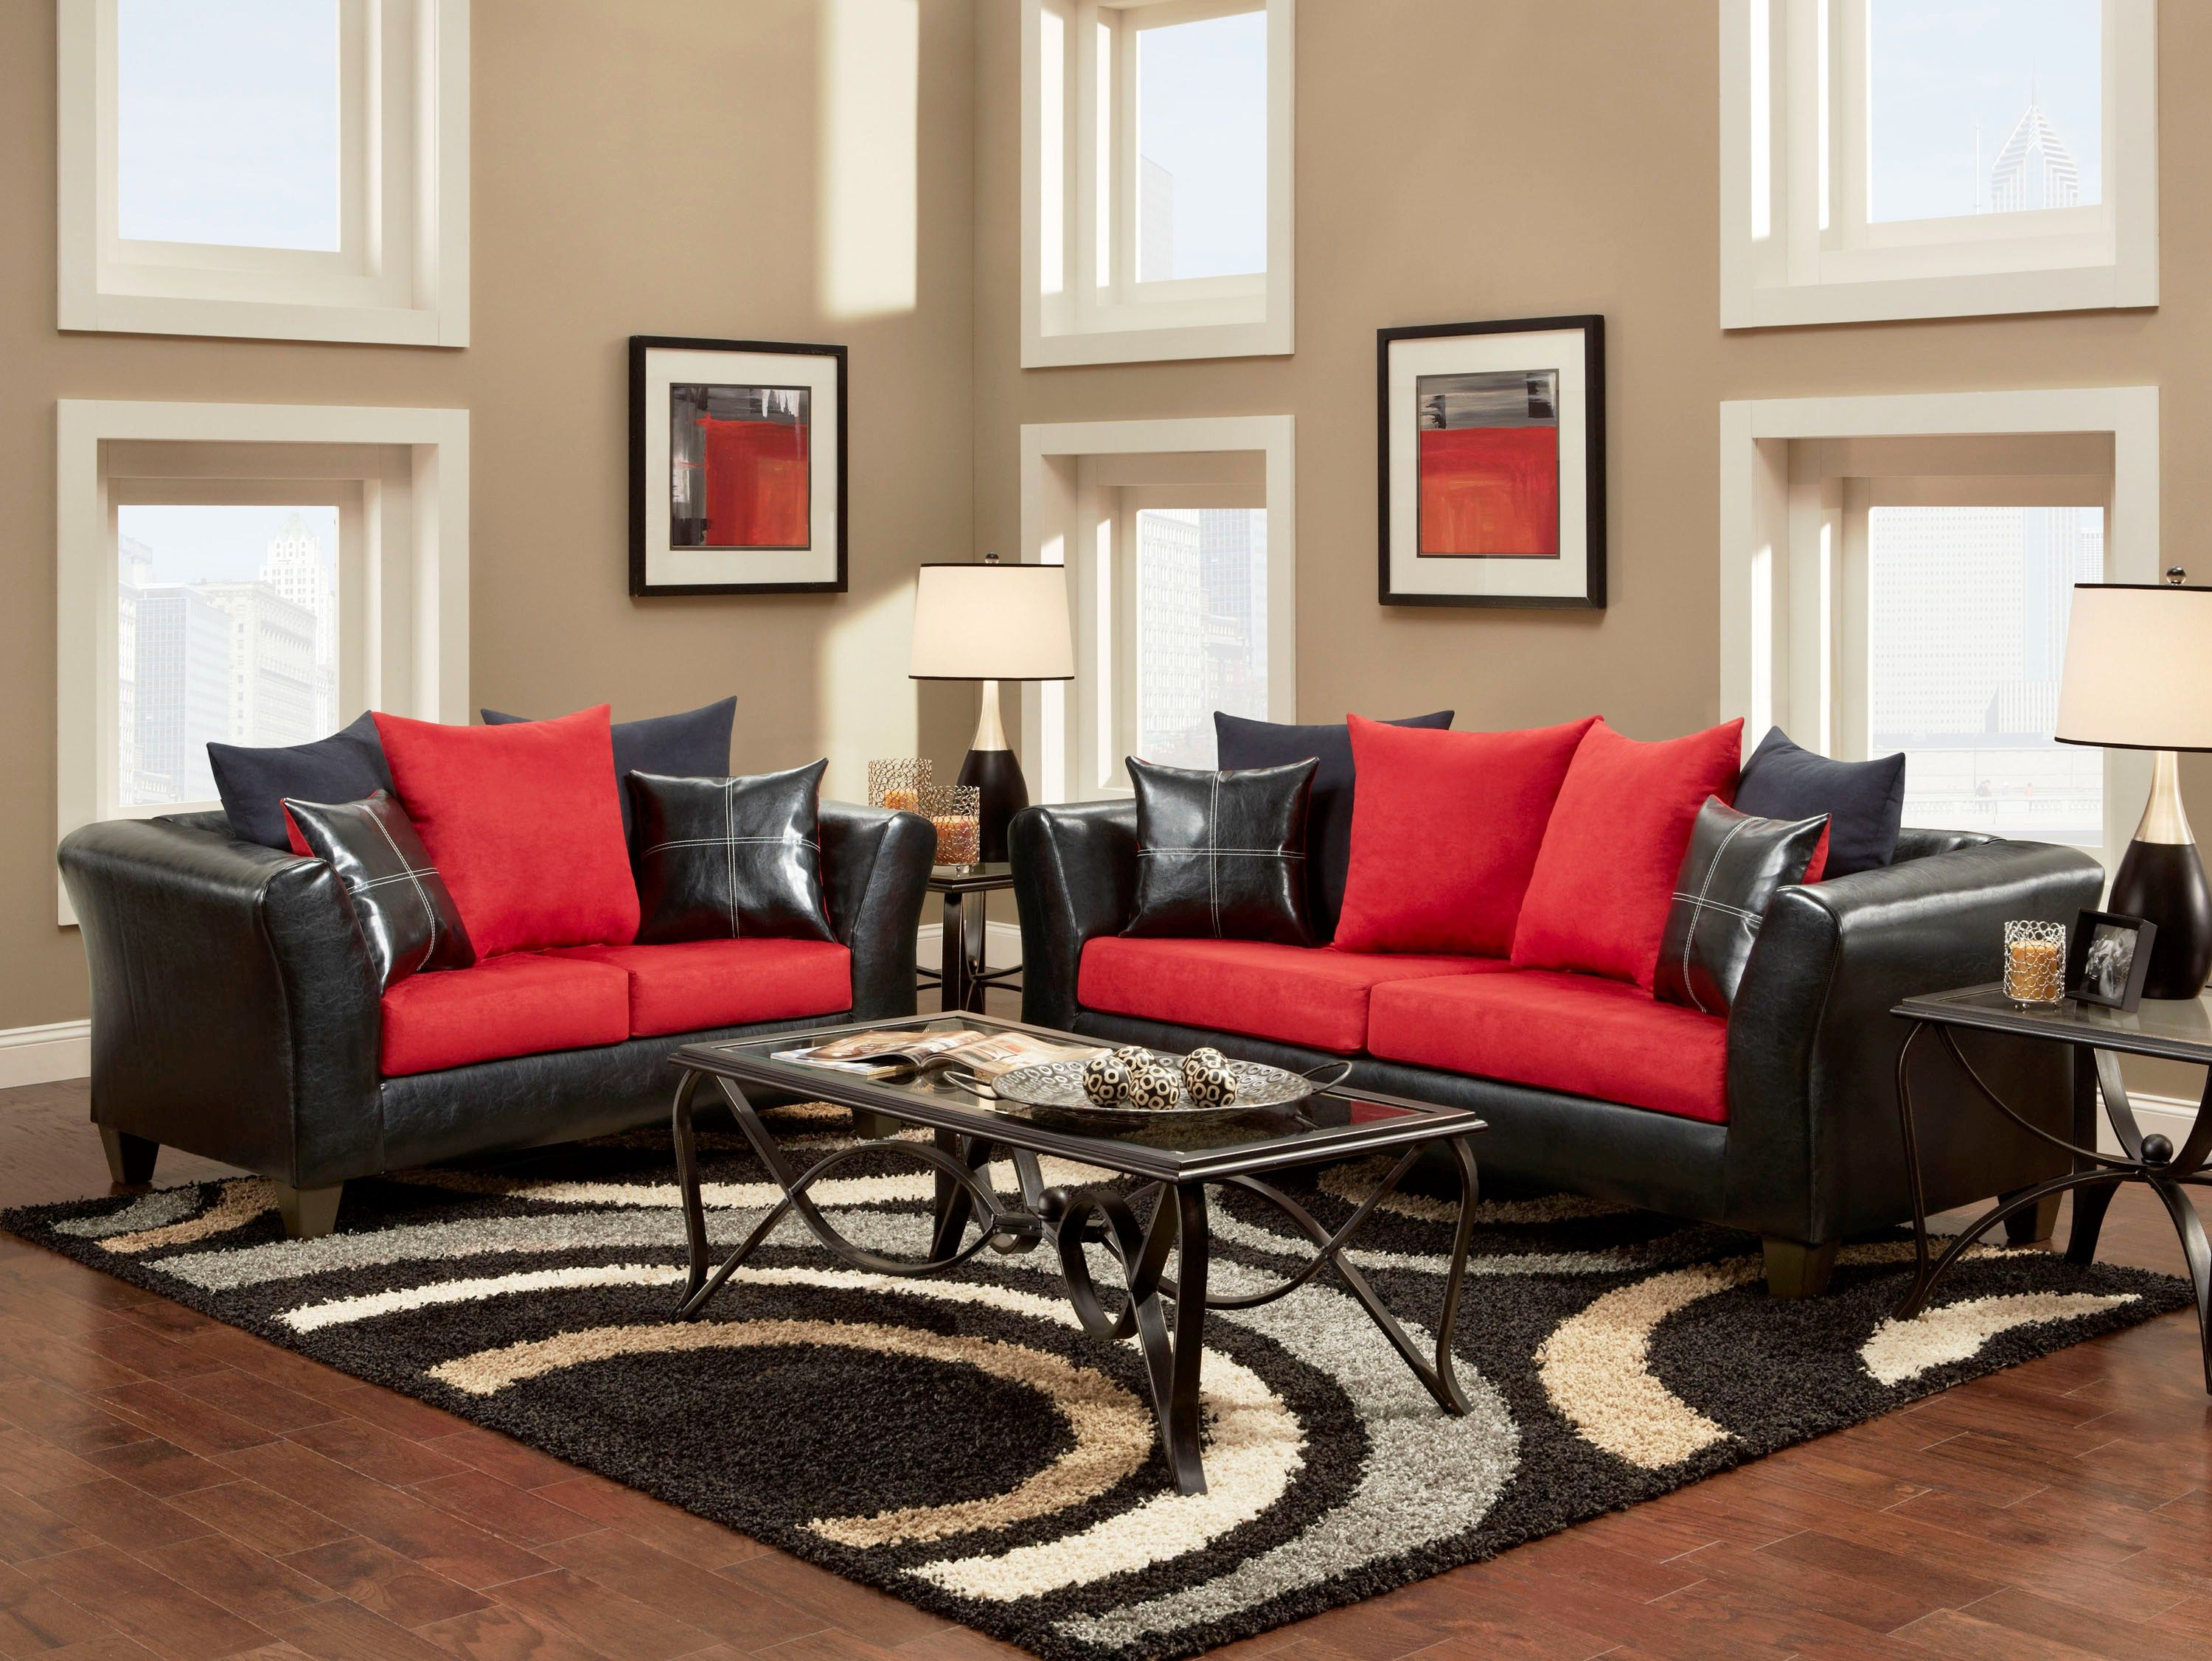 Best Living Room Decorations In Kenya In 2020 Red Living Room Decor Grey Red Living Room Black 400 x 300